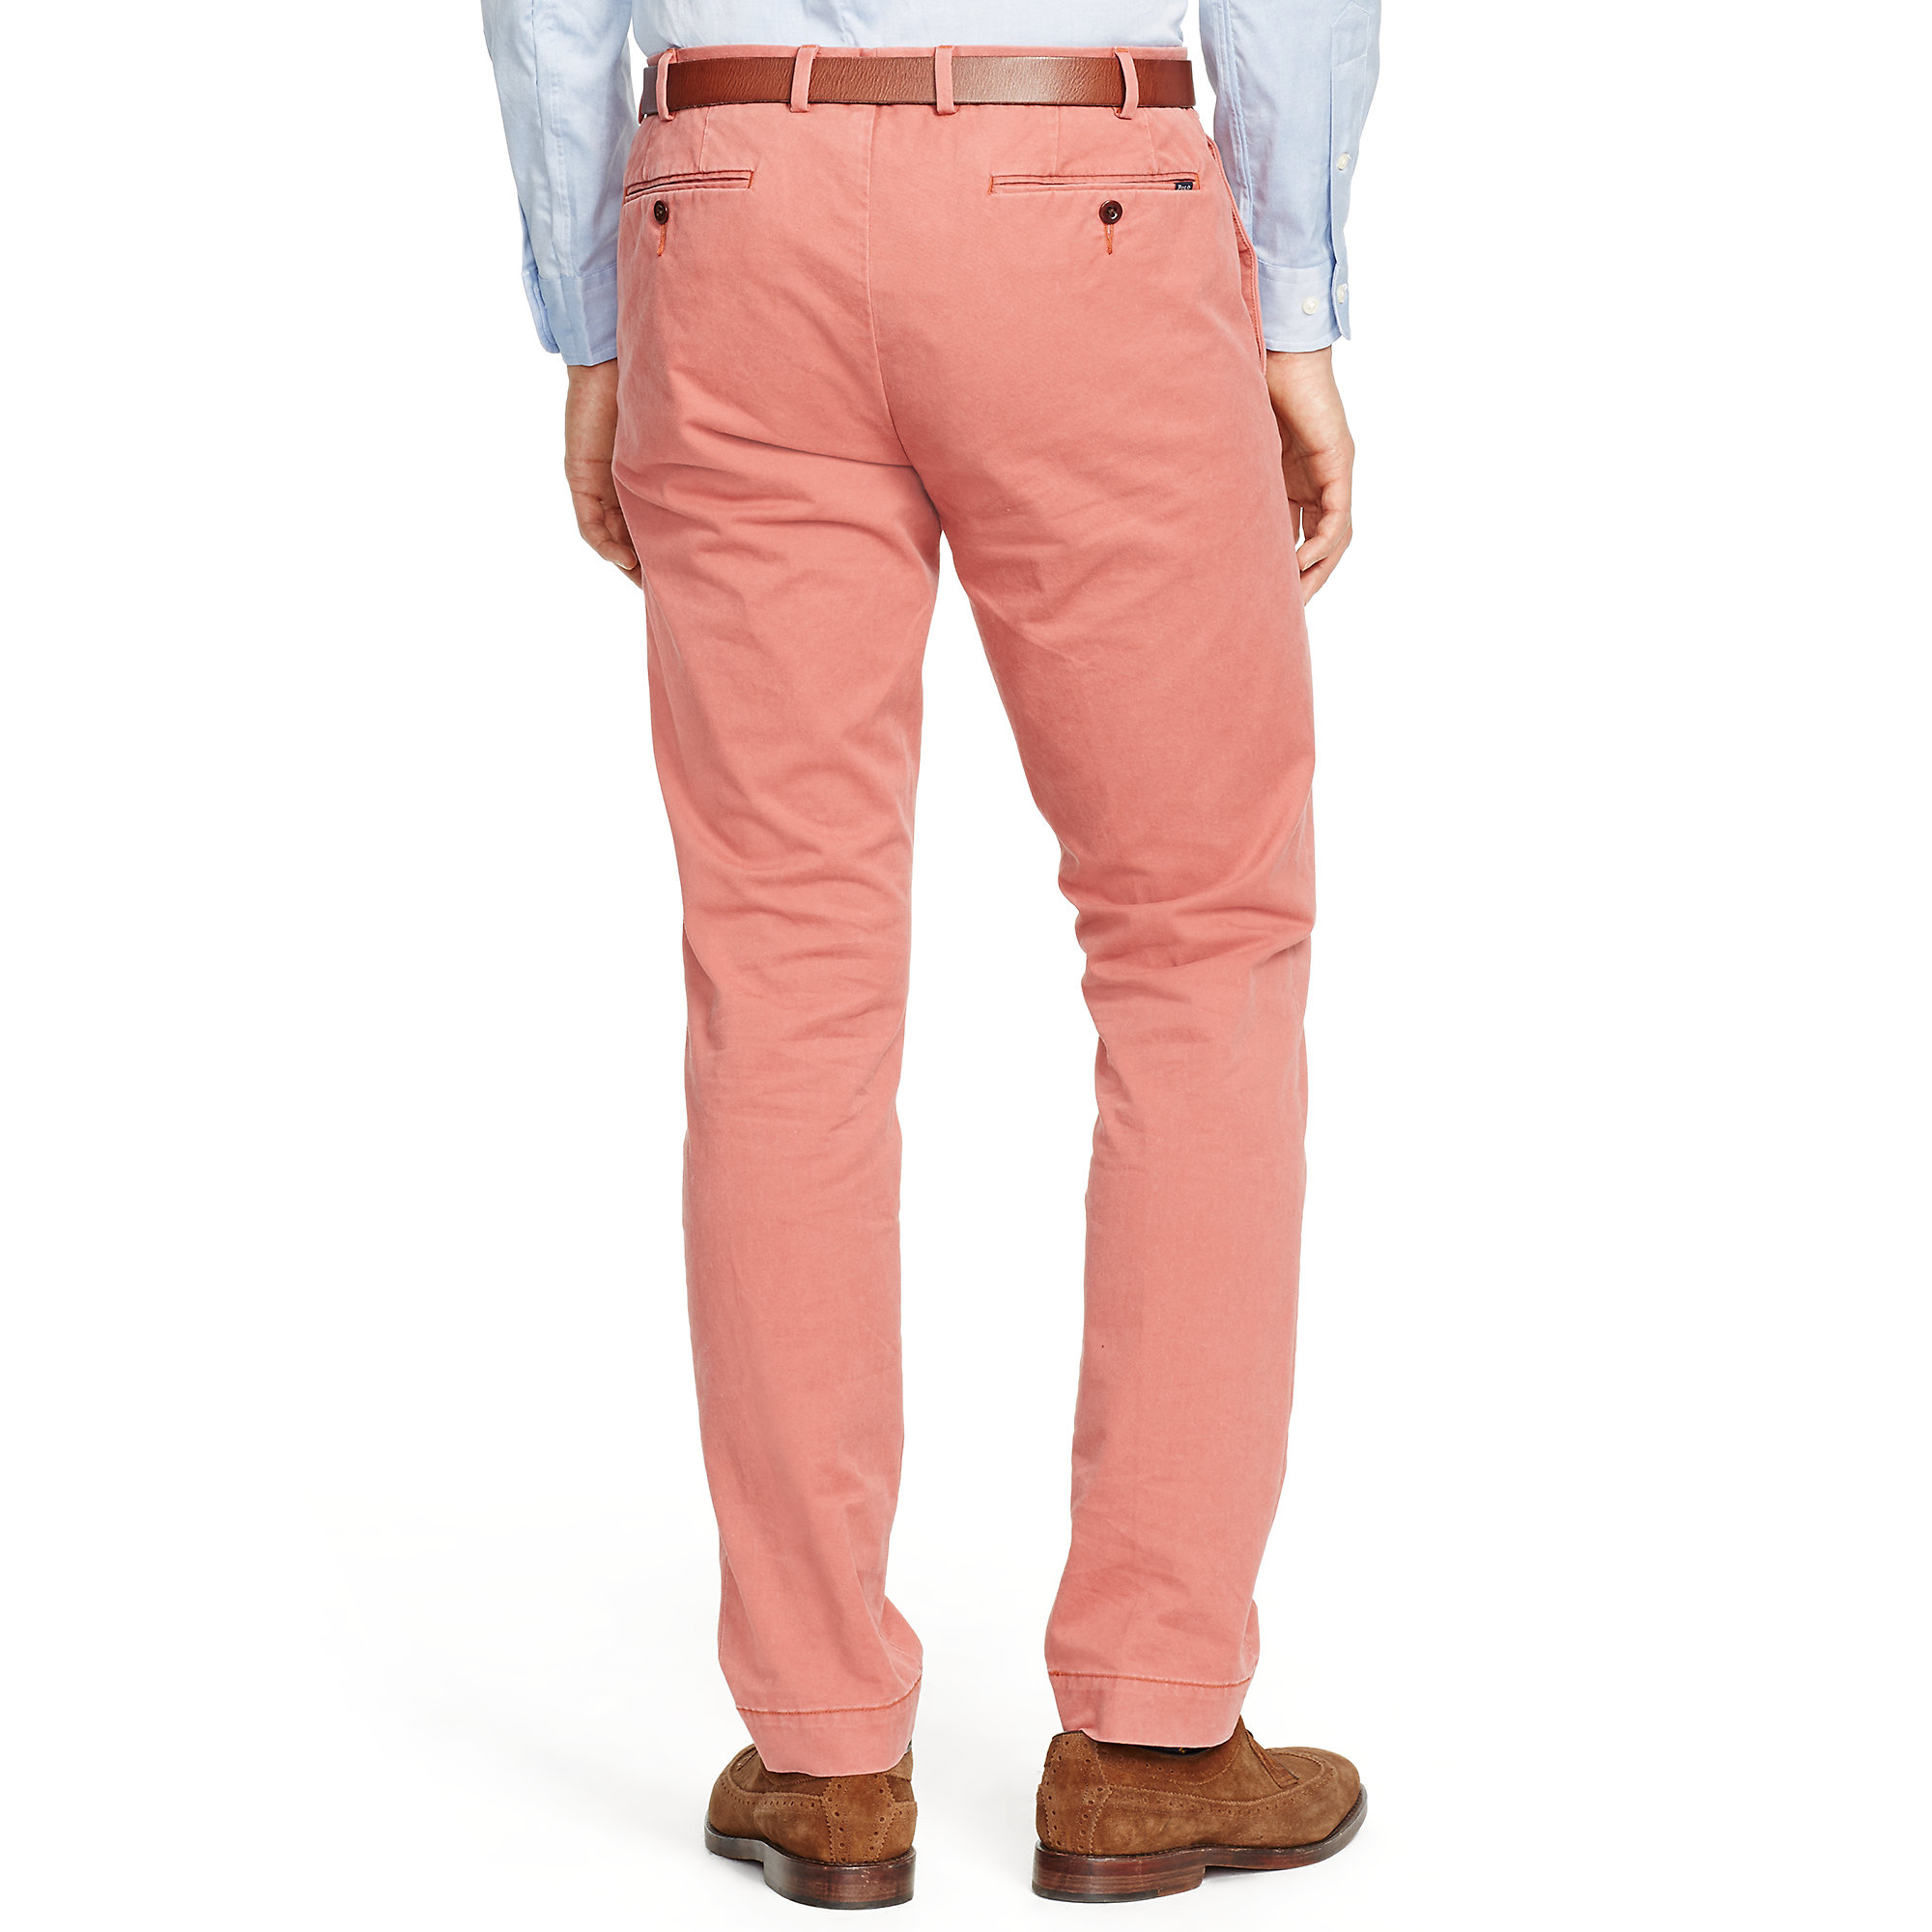 b23f6b67b1644 Lyst - Polo Ralph Lauren Slim-fit Stretch Chino in Red for Men